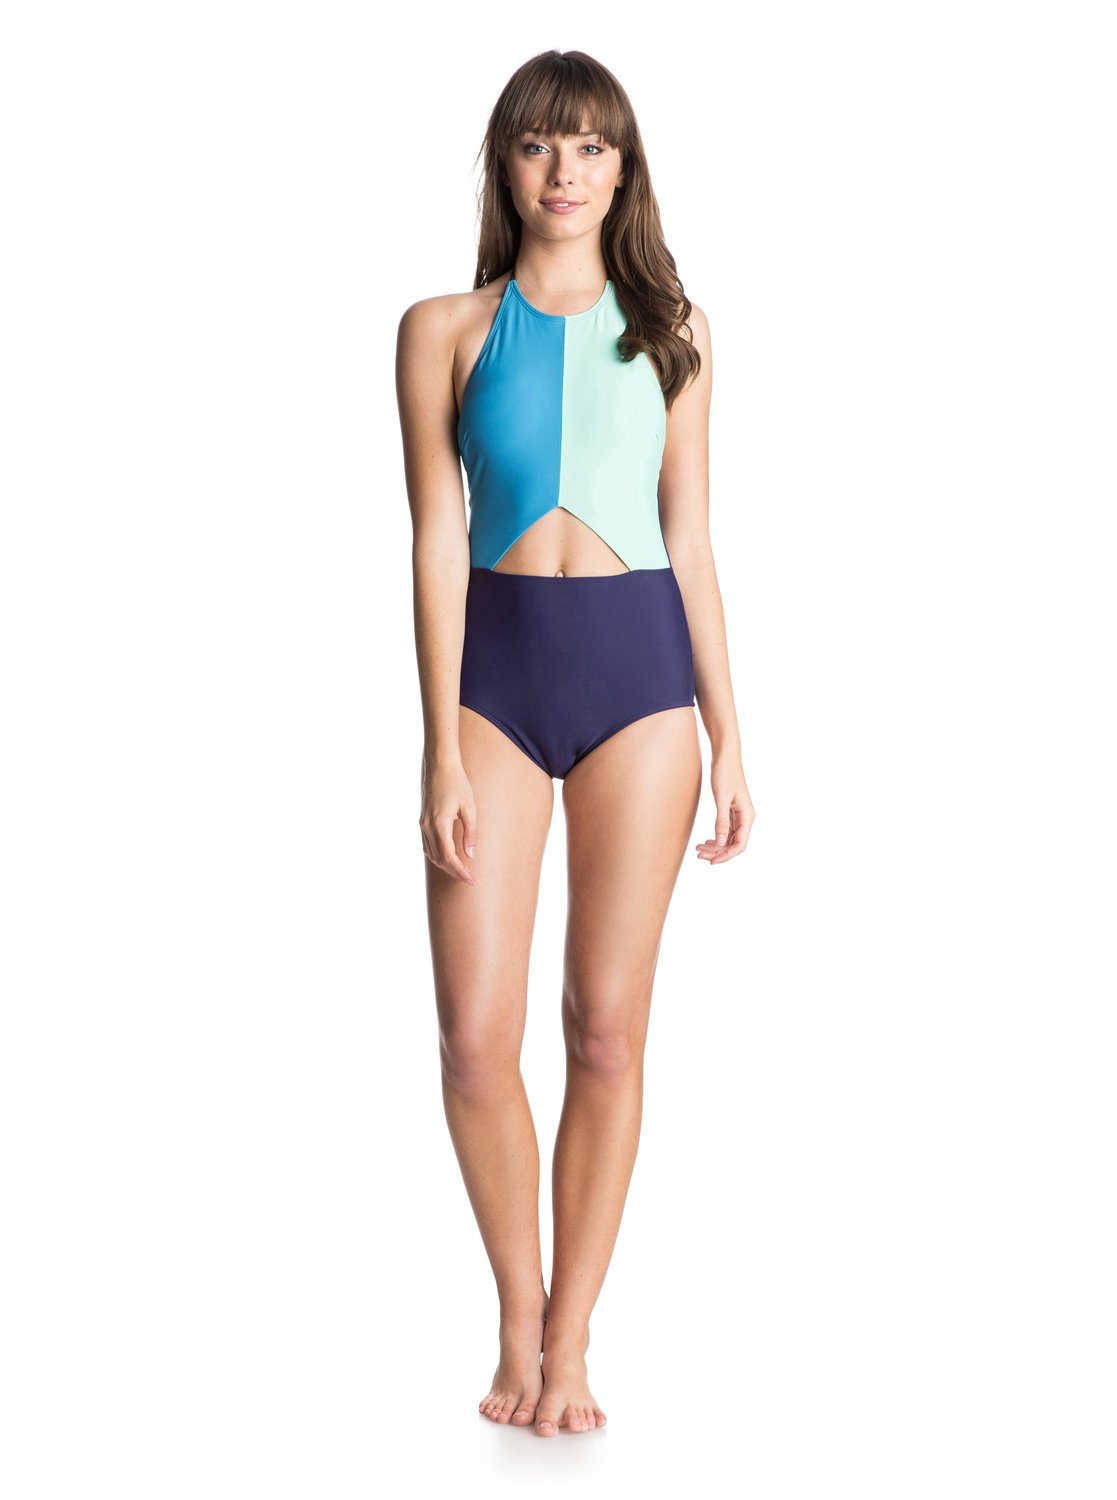 One-Piece Swimsuits & Monokinis Shop our selection of perfectly fitted one-piece 24/7 Support · 90 Day Exchange or Return · Trendy & Affordable · Figure-Flattering StylesTypes: Swimsuit, Bikini, Dresses, Skirts & Shorts, Lingerie, Accessories.